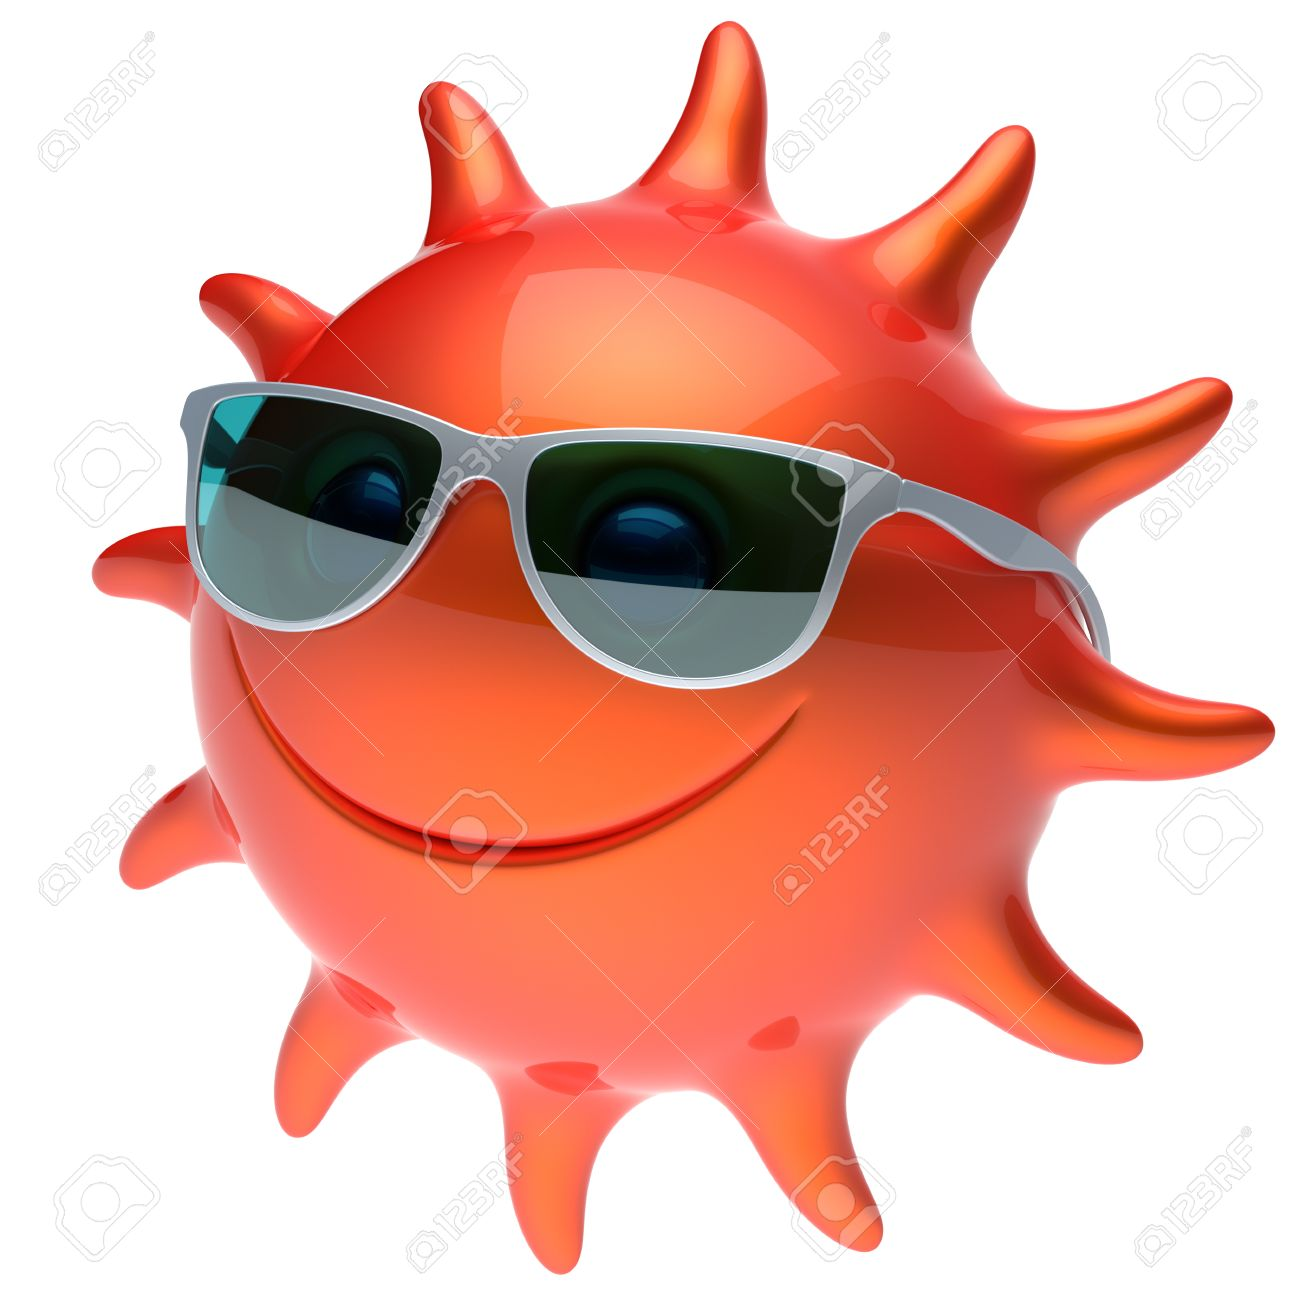 Image result for sun emoticon